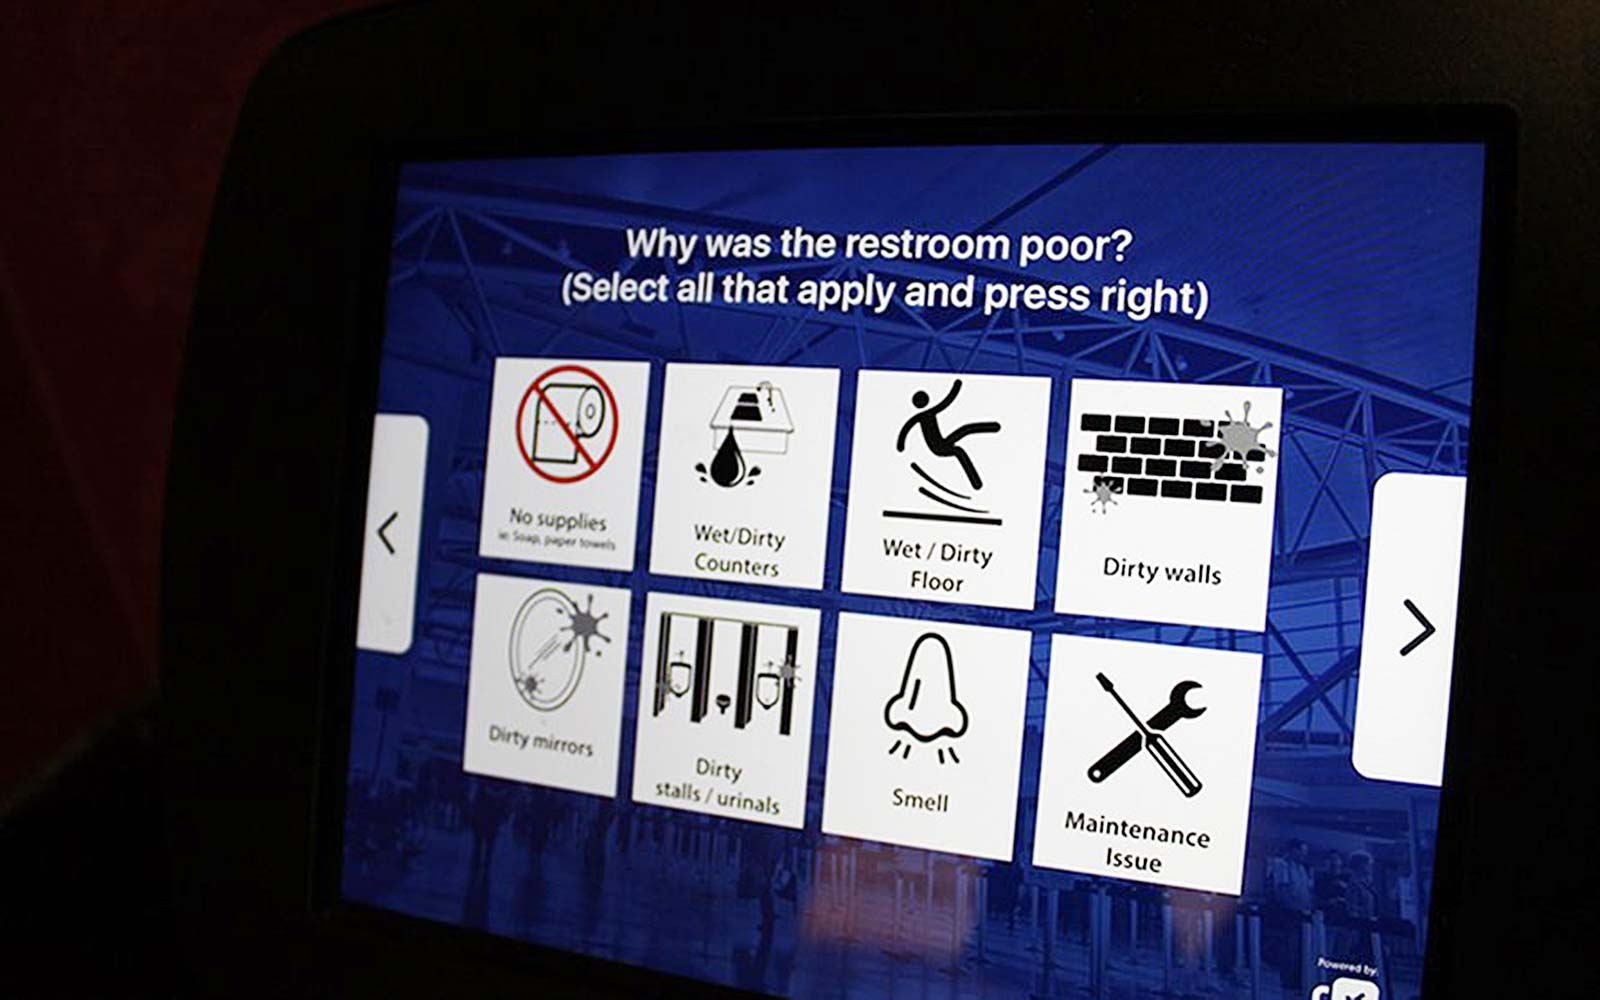 Houston Airports Now Have \'Smart Bathrooms\' for High-tech Toilet ...